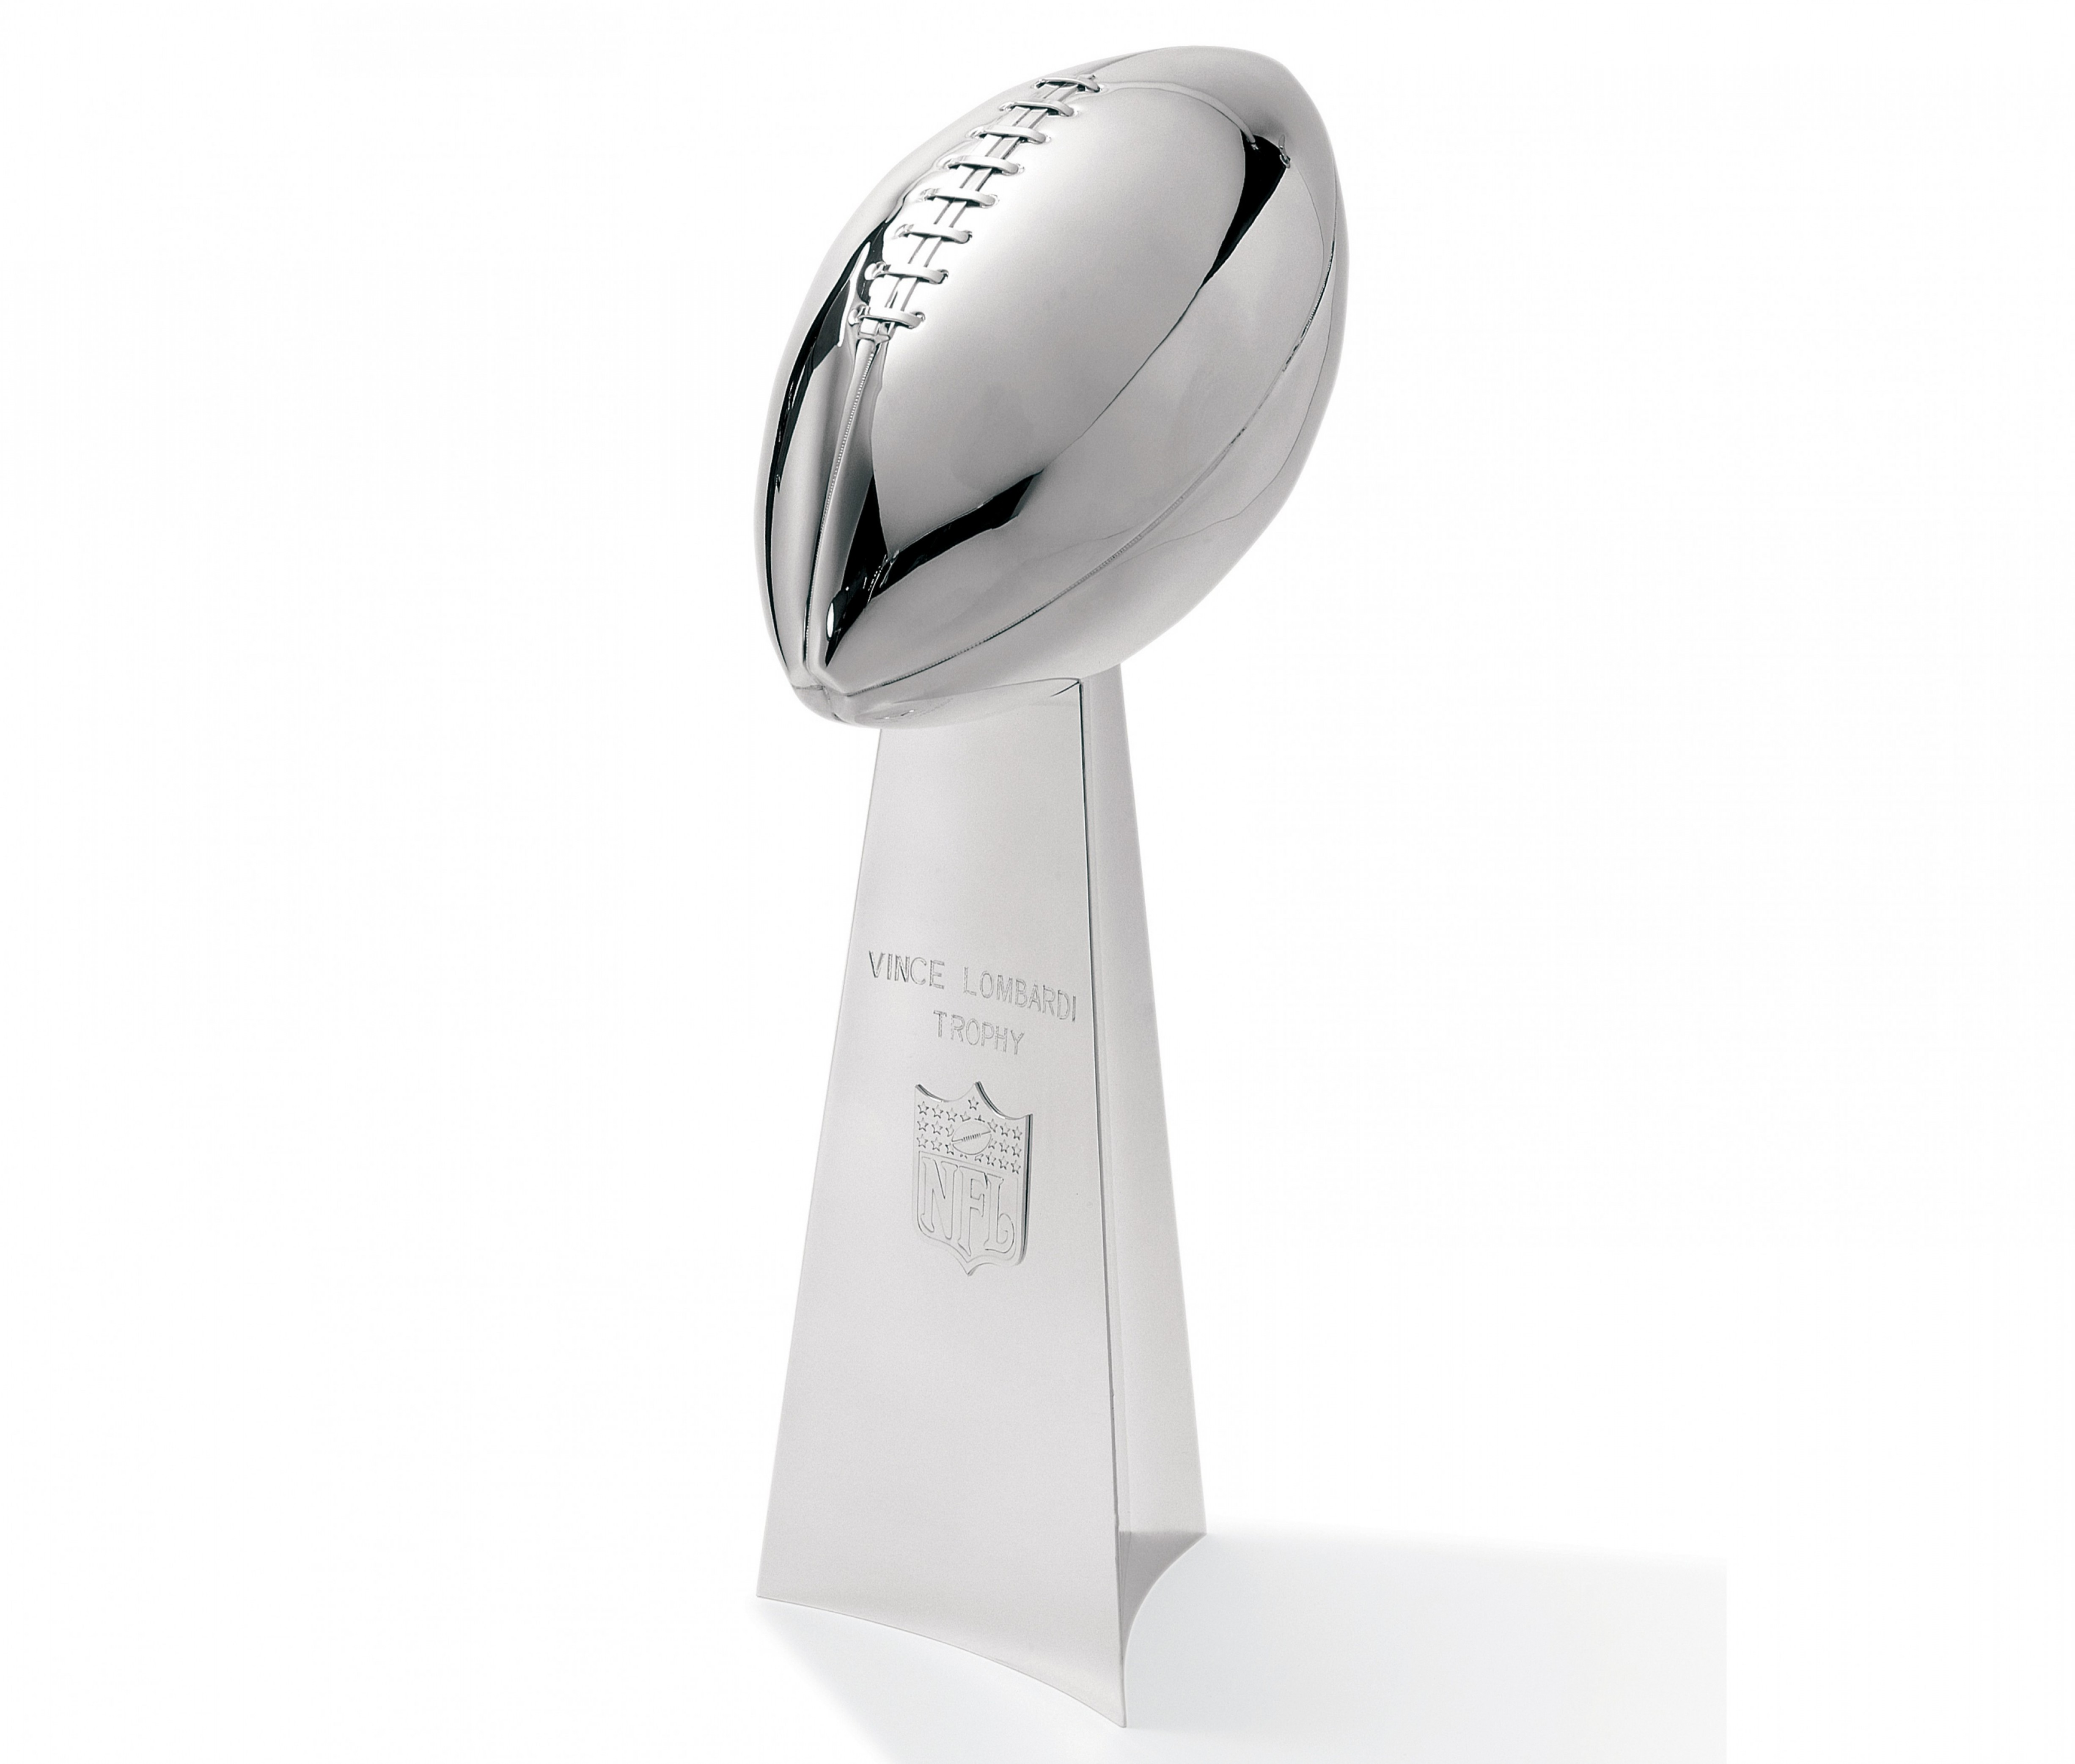 Super Bowl XLVIII Trophy Vector: Is Your Nfl Knowledge Up To Par